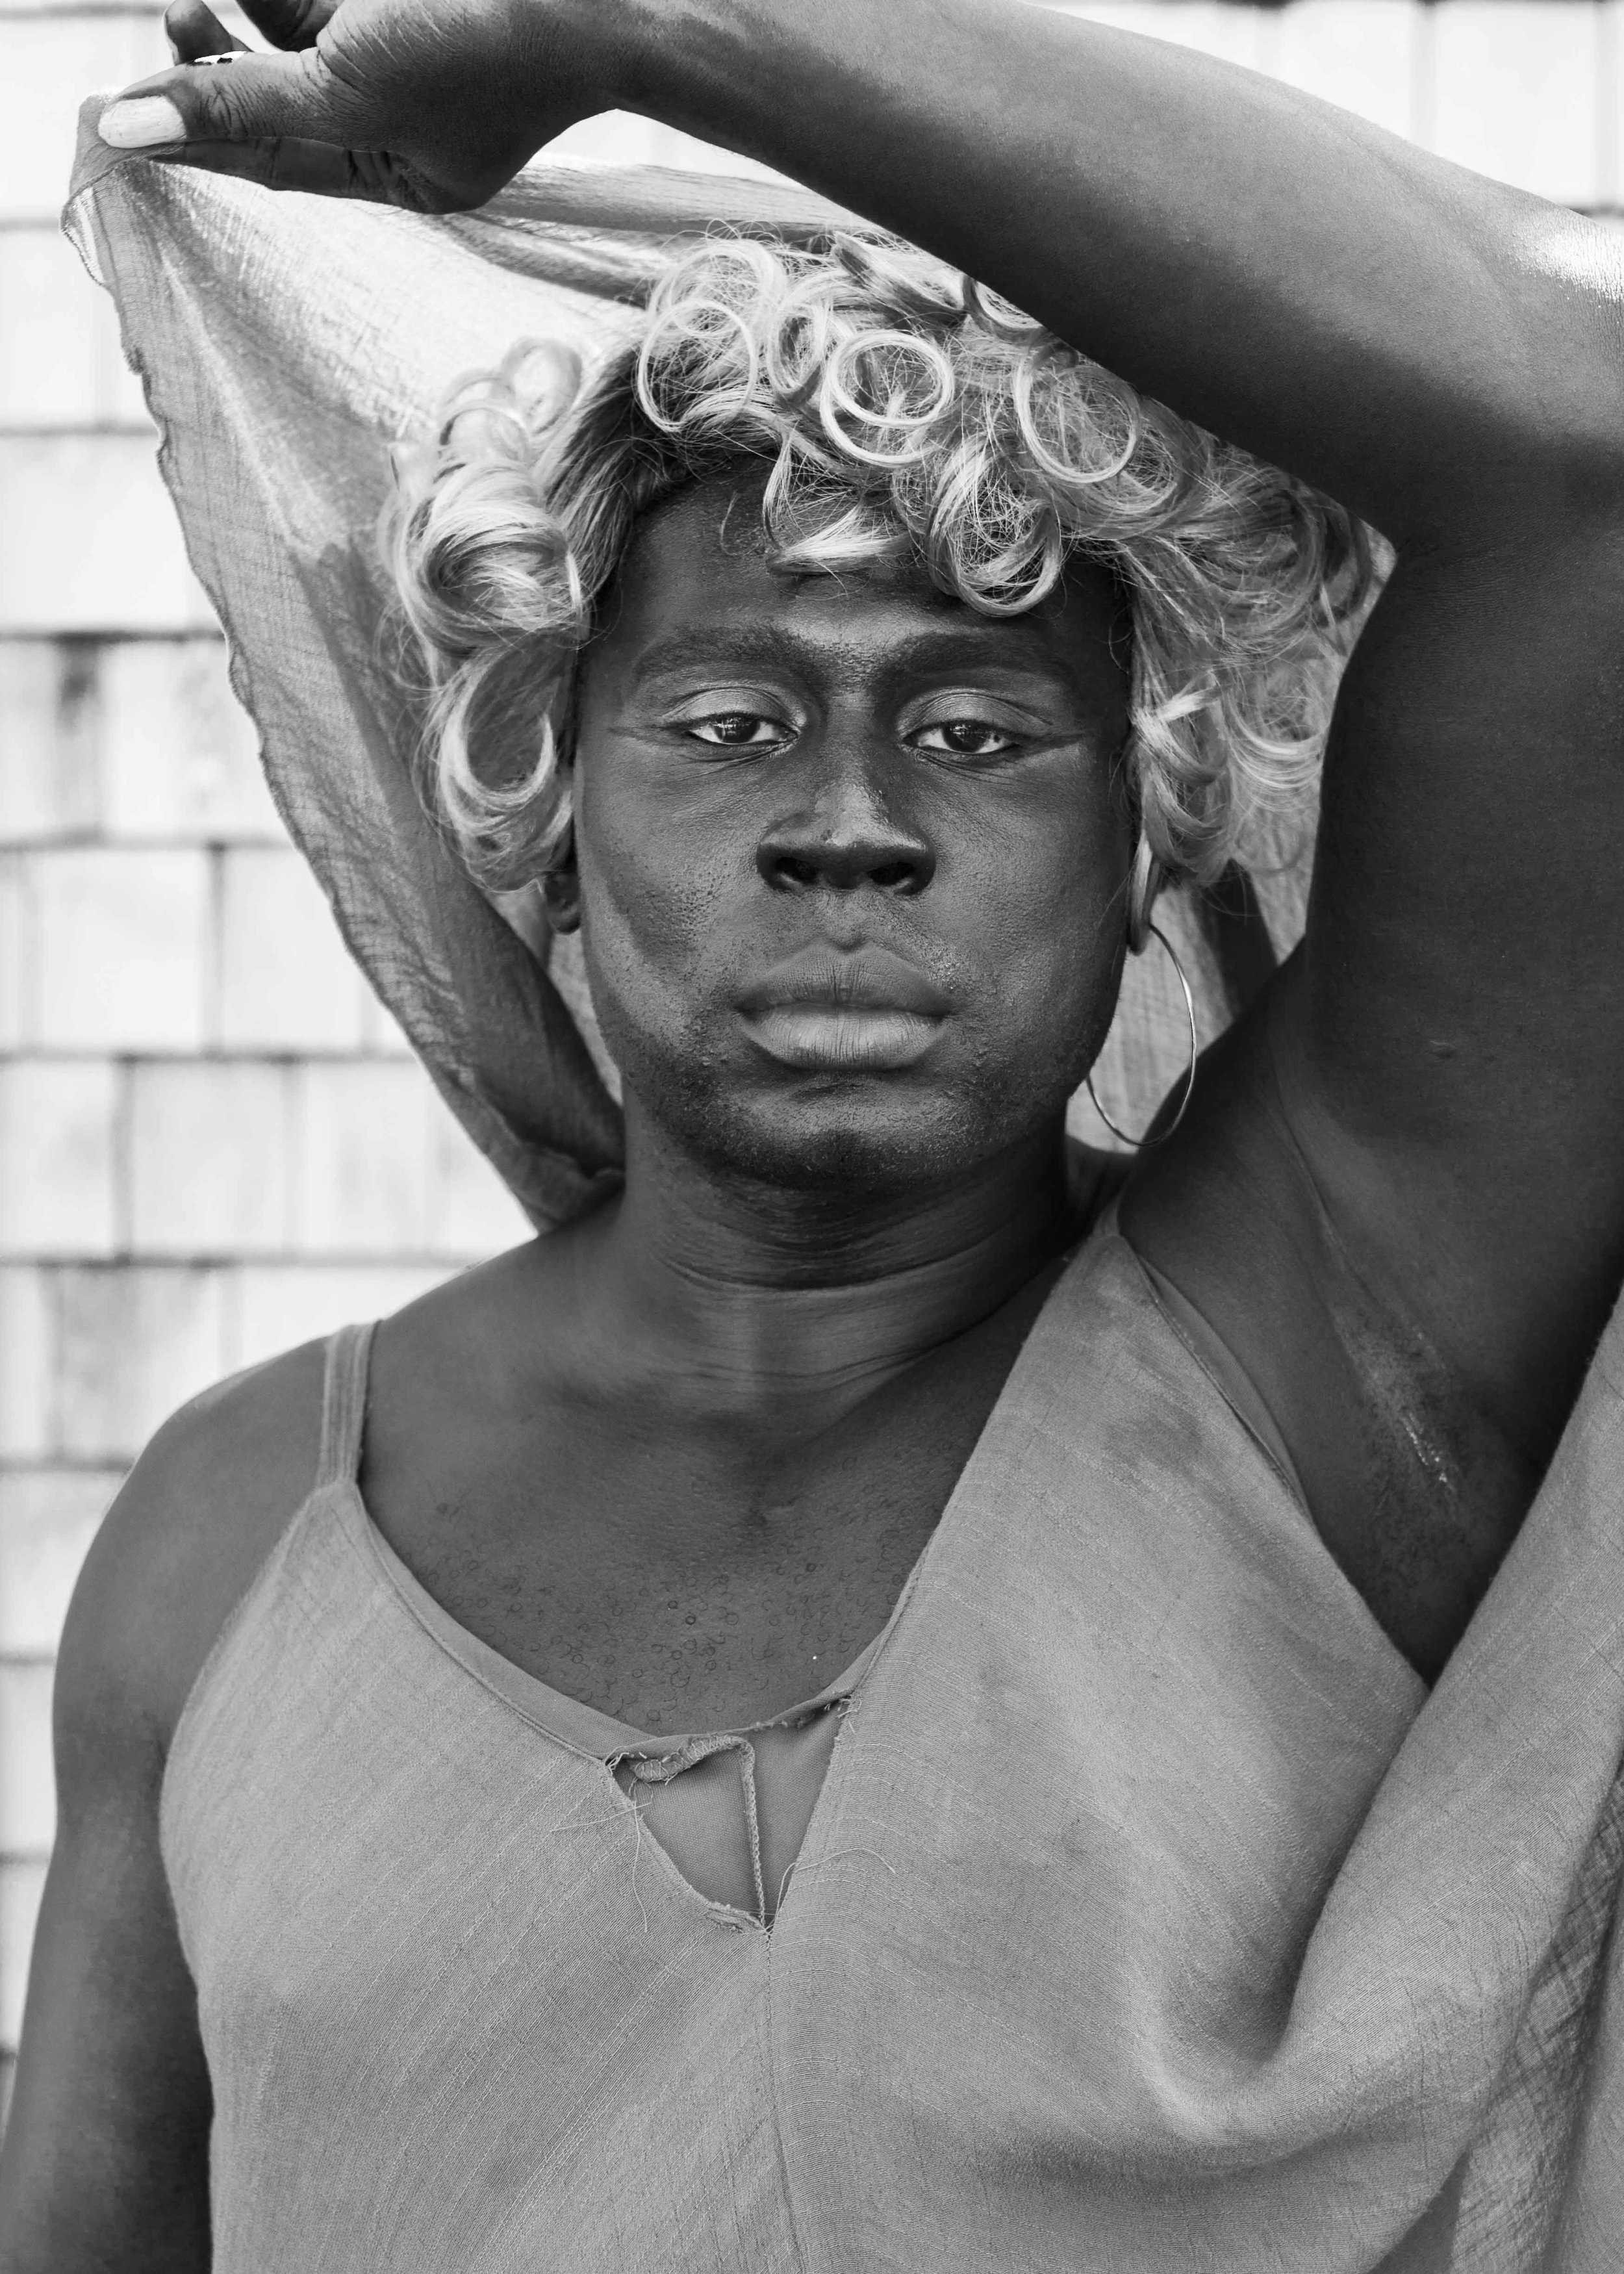 Portraits_In_Provincetown_2017_002 copy copy.JPG